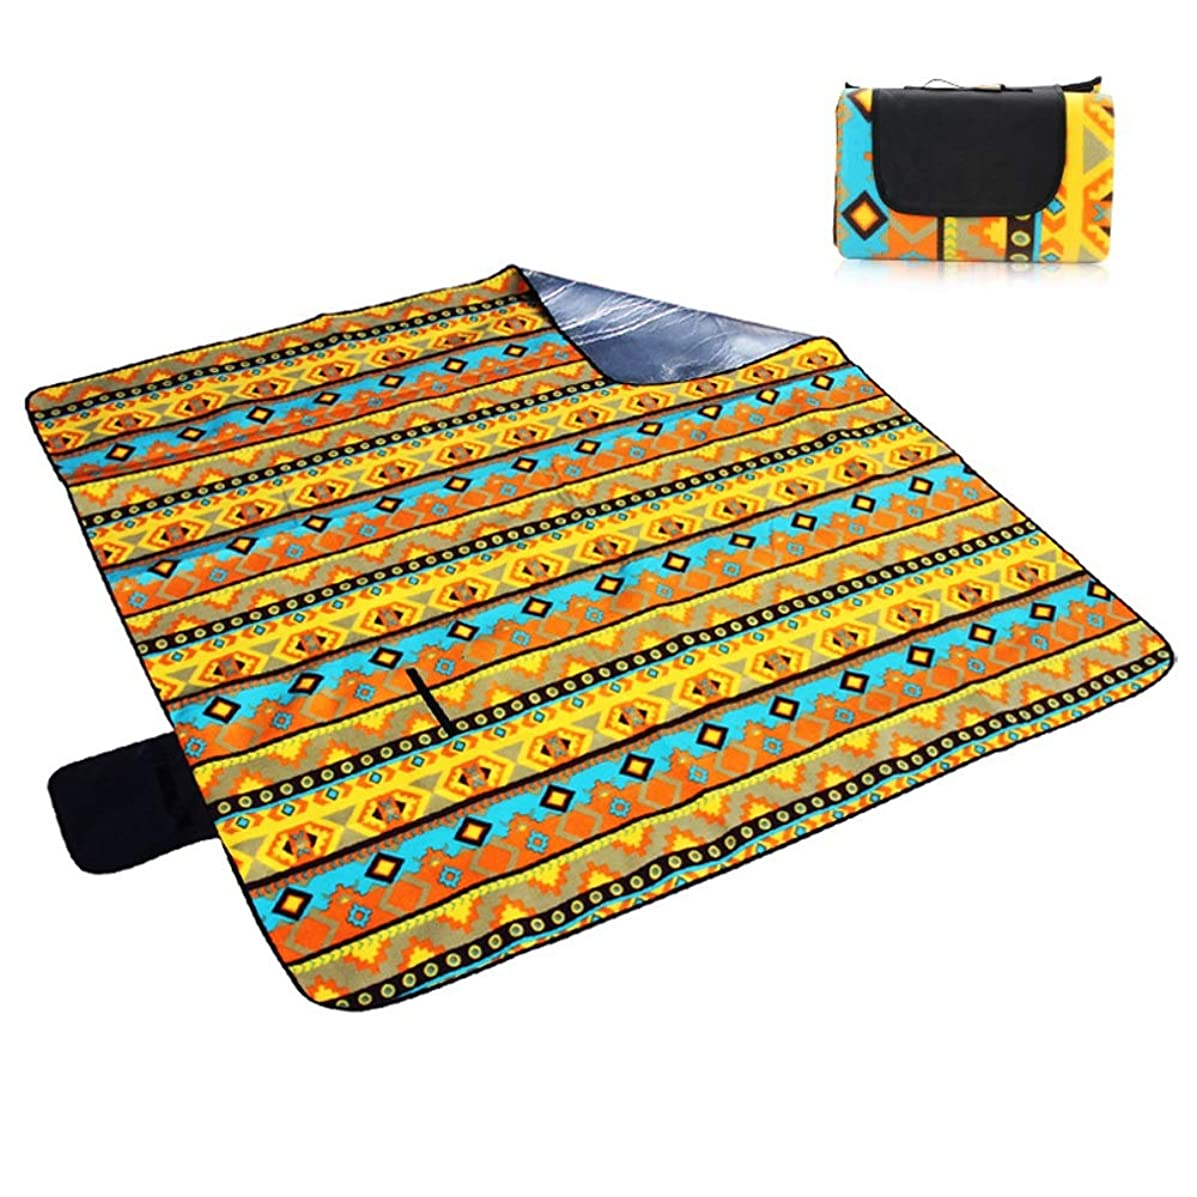 Hdcwz Field Camping Outdoor Moisture Proof Pad Spring Tour Outing Picnic Mat Portable Thicken Waterproof Camping Lawn Mat Sandless Fold ?Foldable Fold Beach Mat Sand Free Waterproof Mats (Color : B)